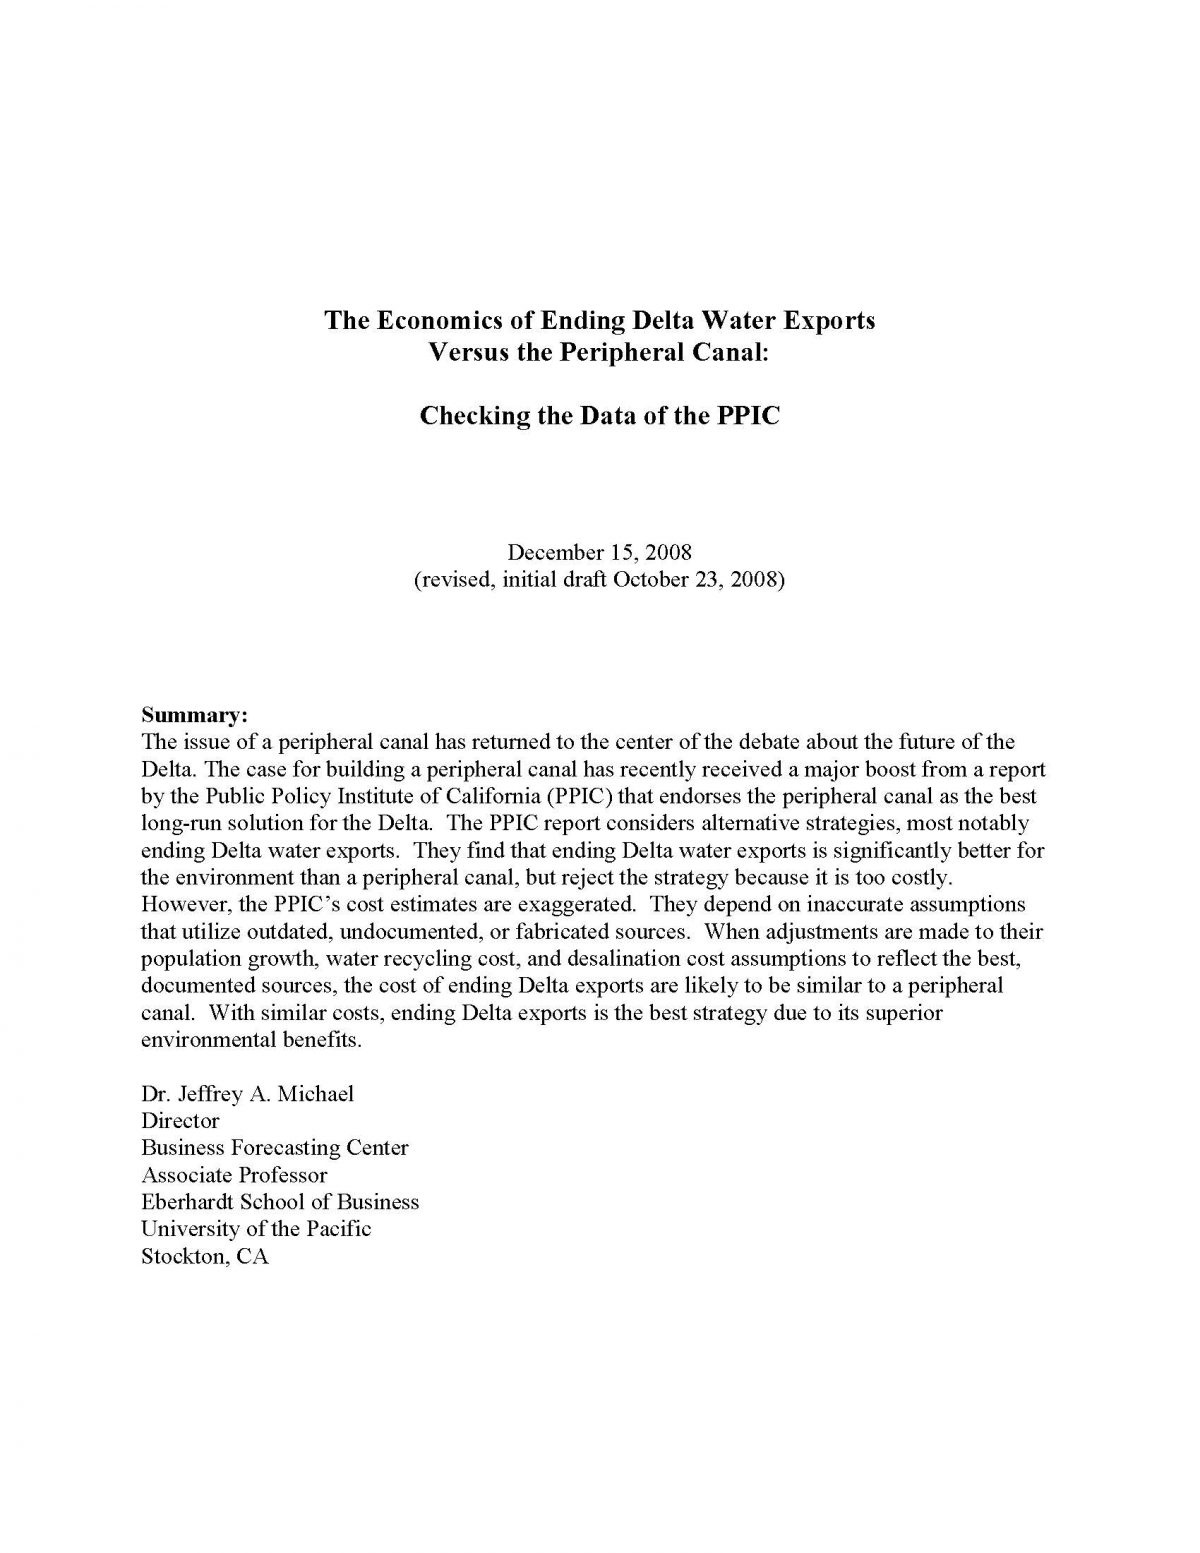 The Economics of Ending Delta Water Exports Versus the Peripheral Canal: Checking the Data of the PPIC